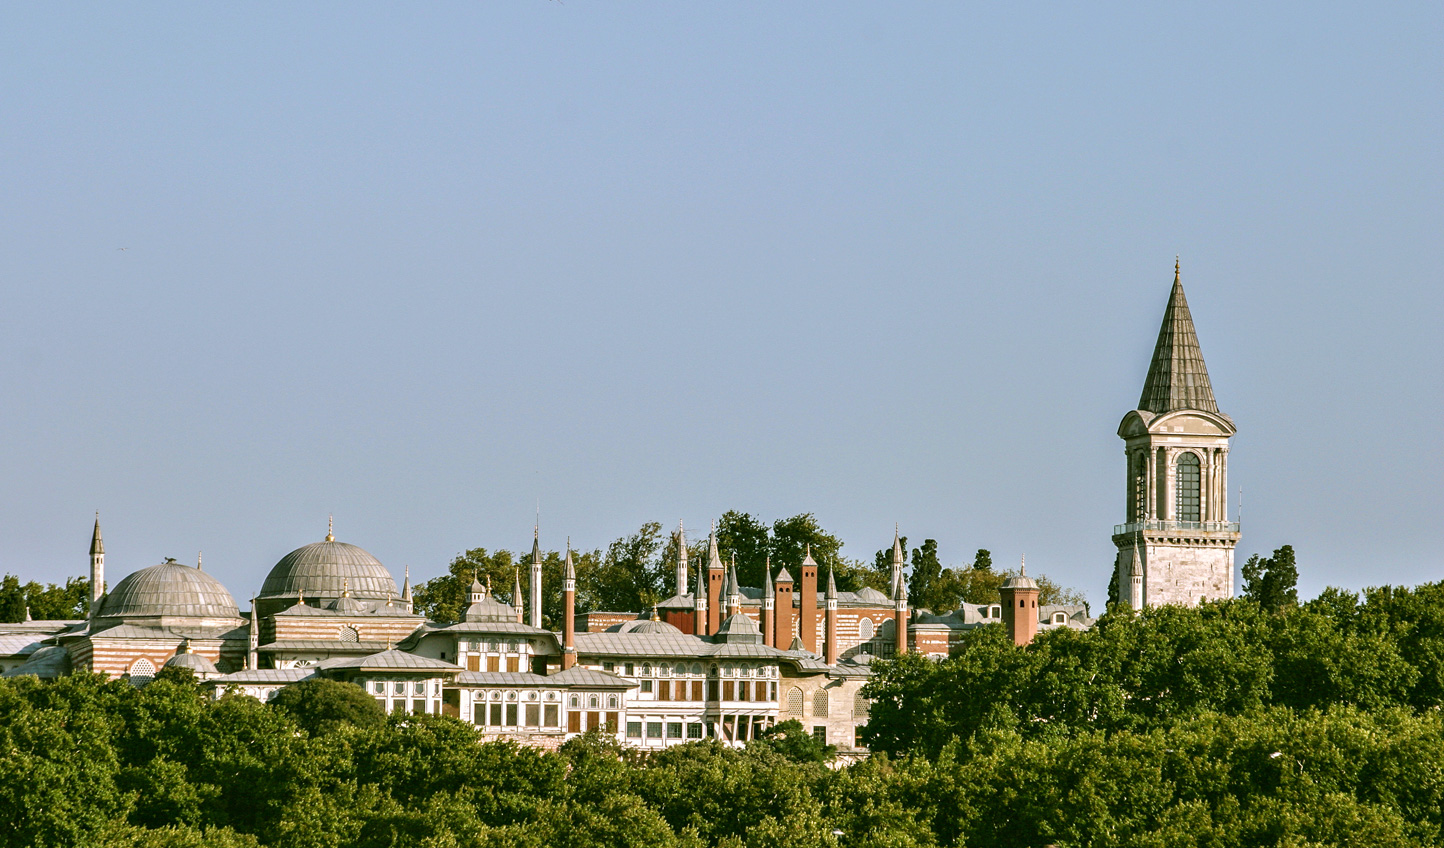 Soak up views over the city from Topkapi Palace